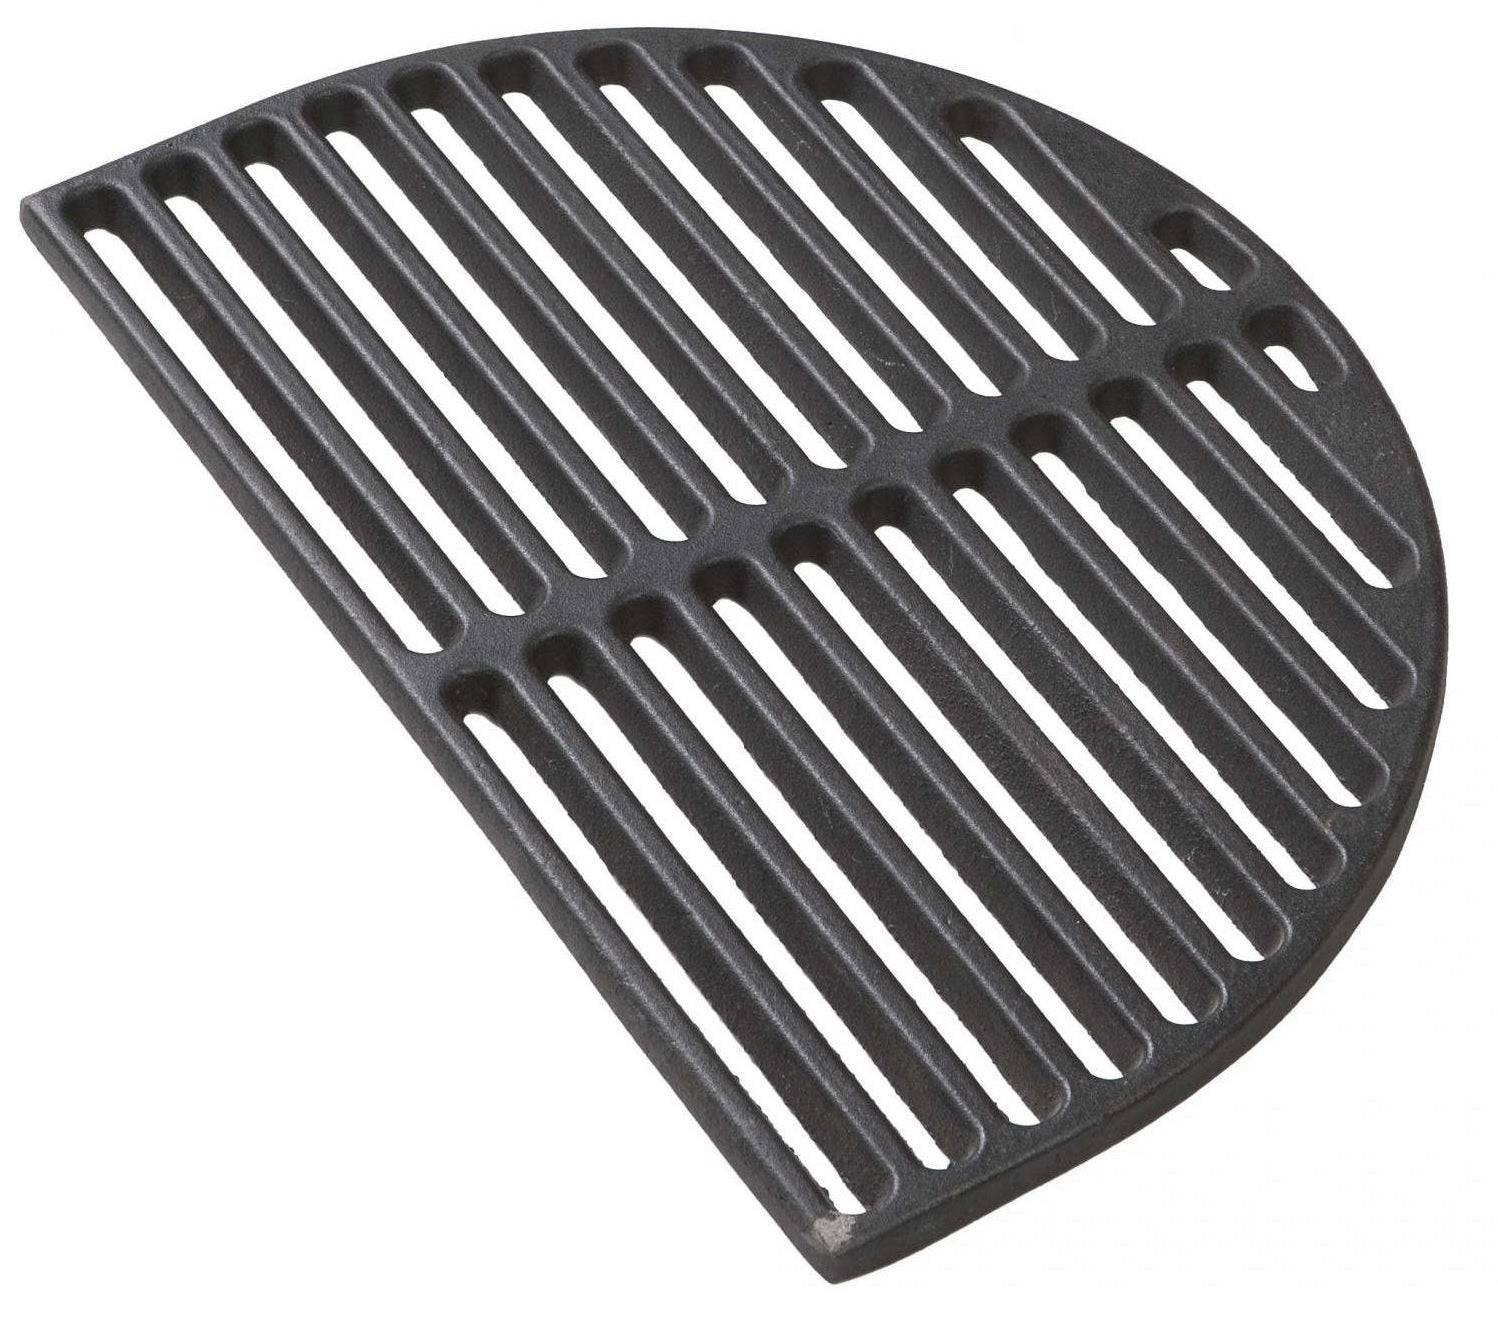 Primo 361 Cast Iron Cooking Grate